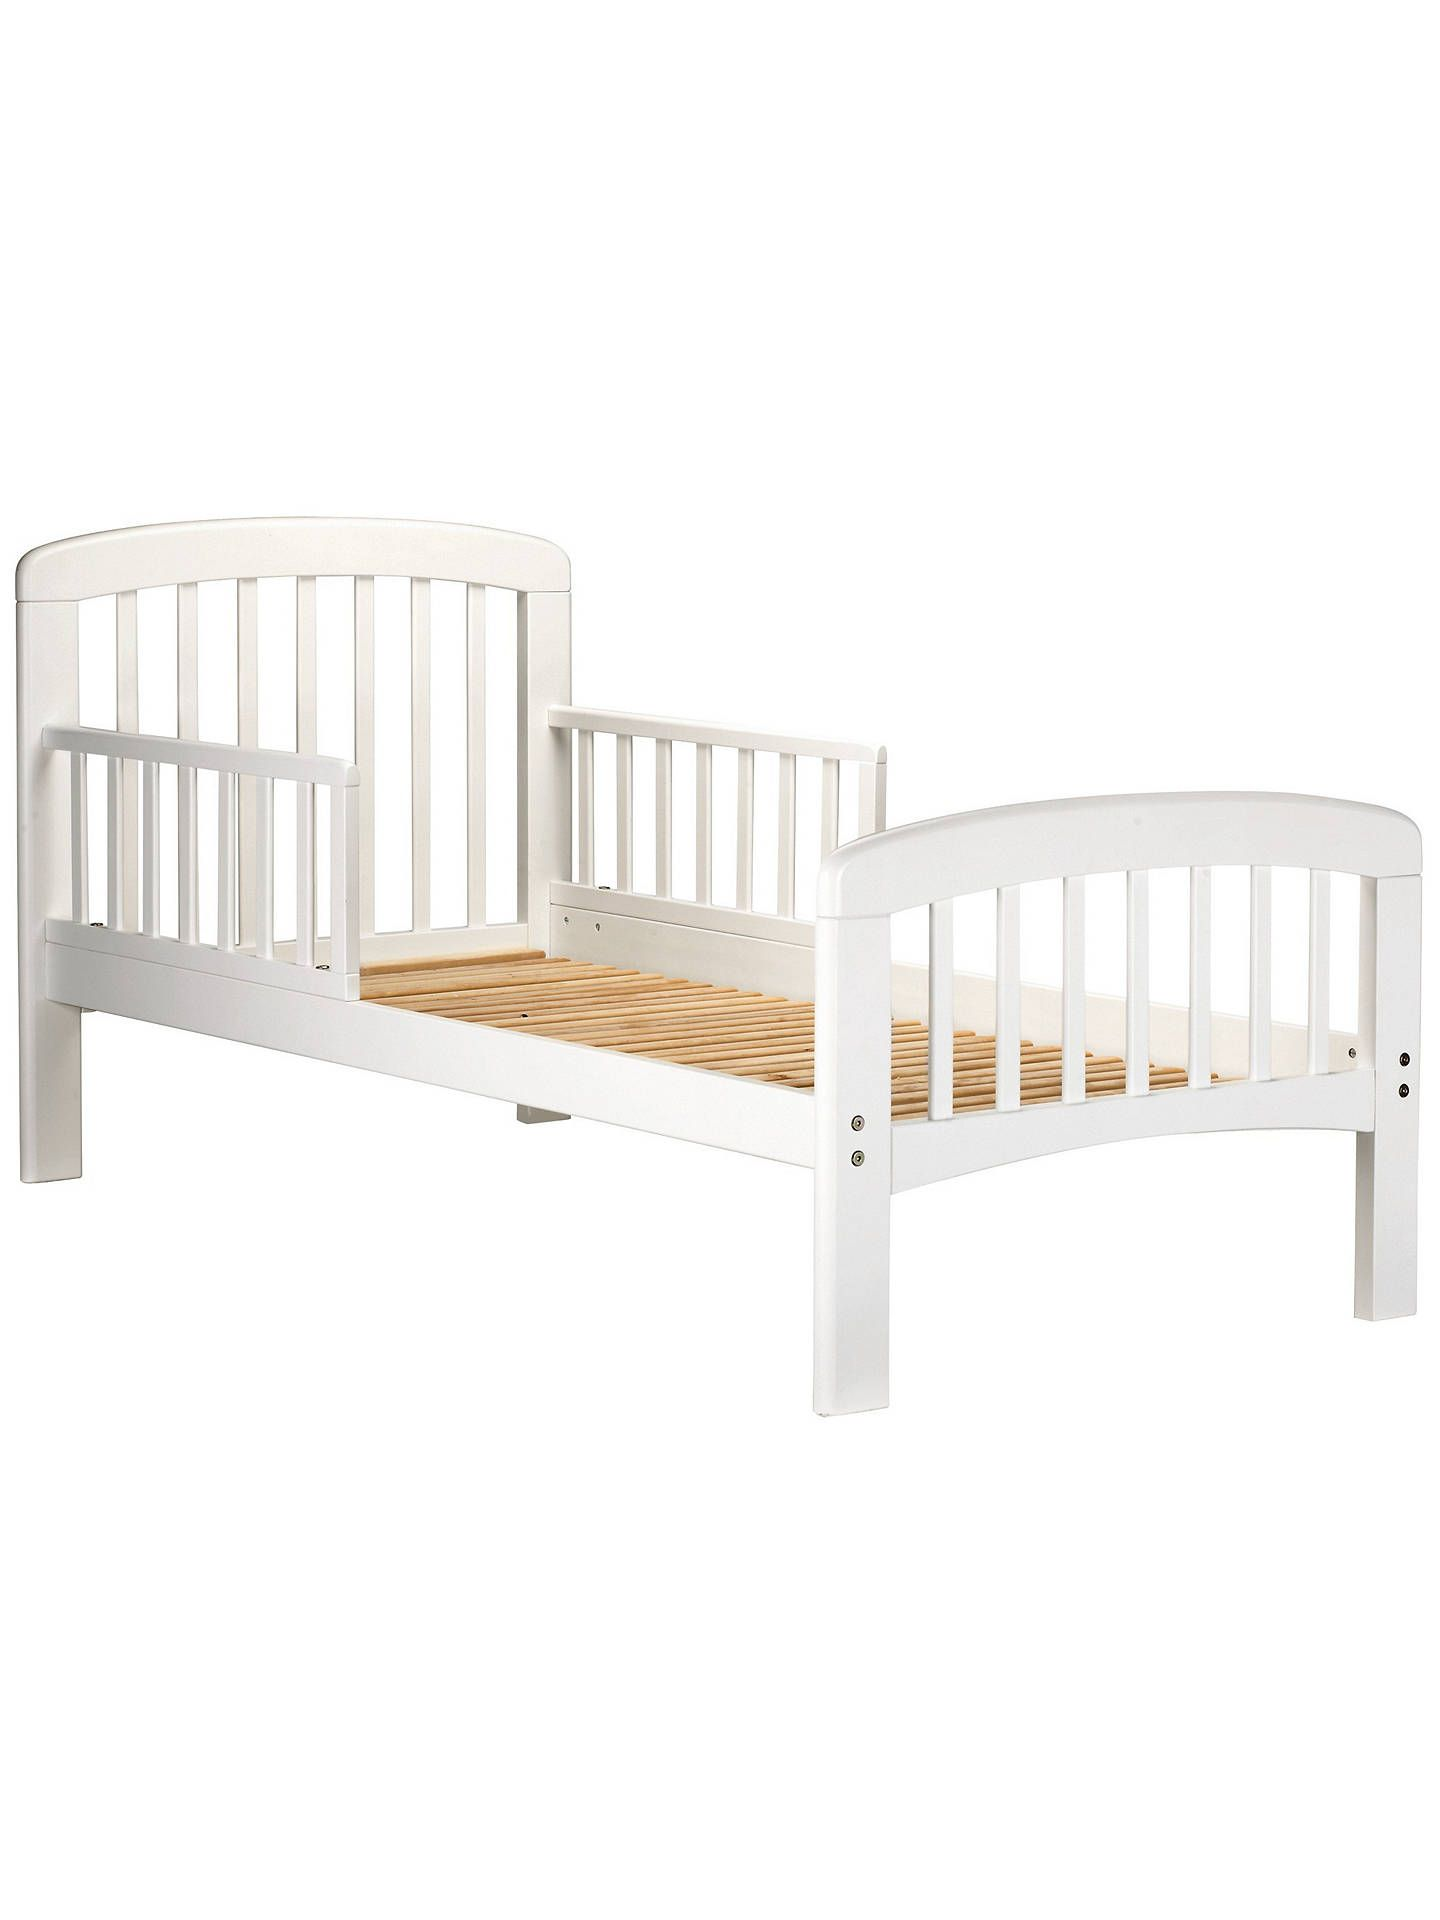 John lewis u partners anna junior and toddler bed white in